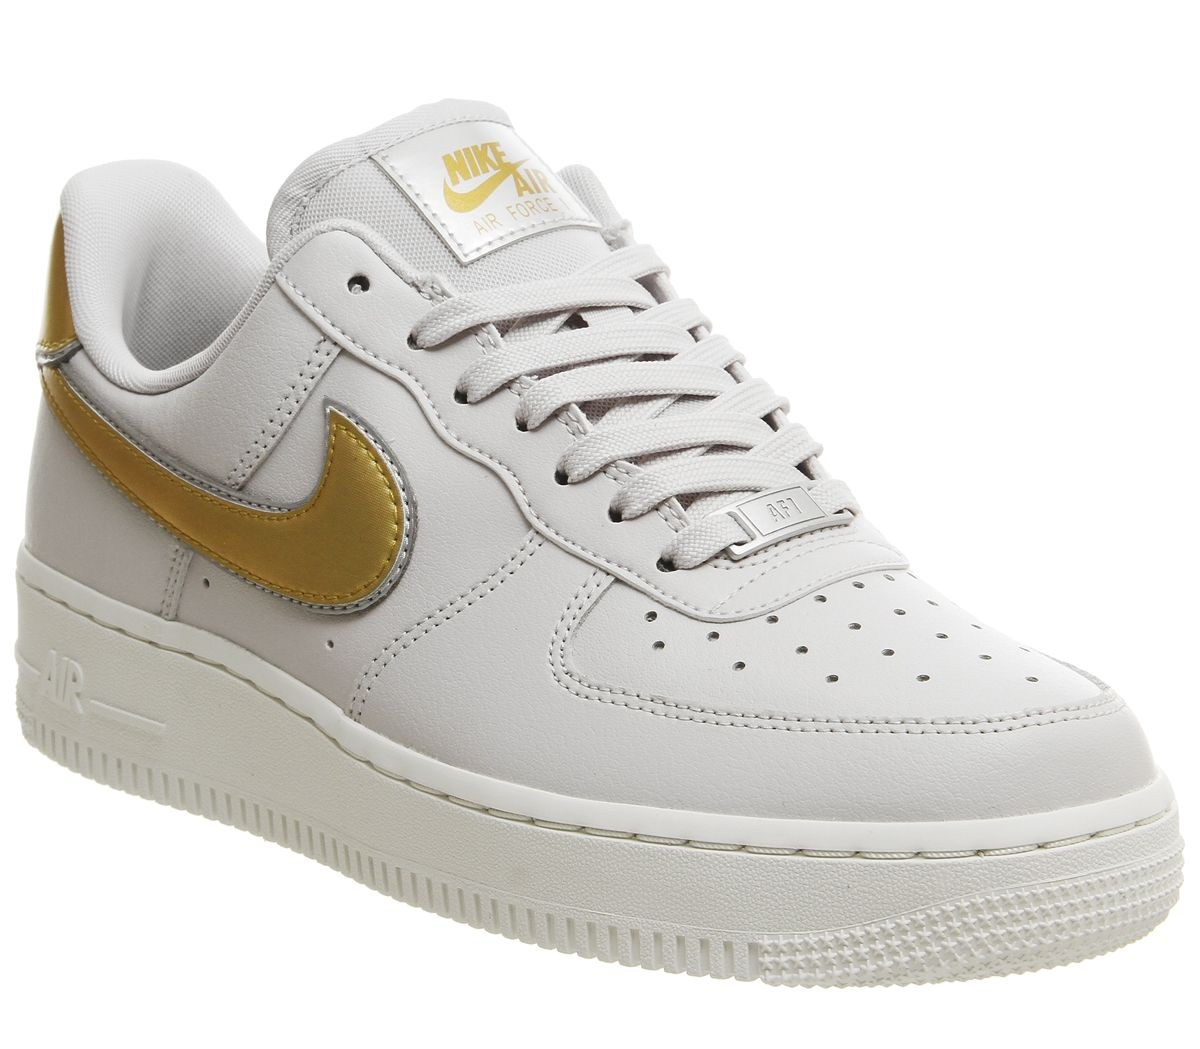 8617efb2a Nike Air Force 1 07 Trainers Vast Grey Gold Summit White Platinum ...